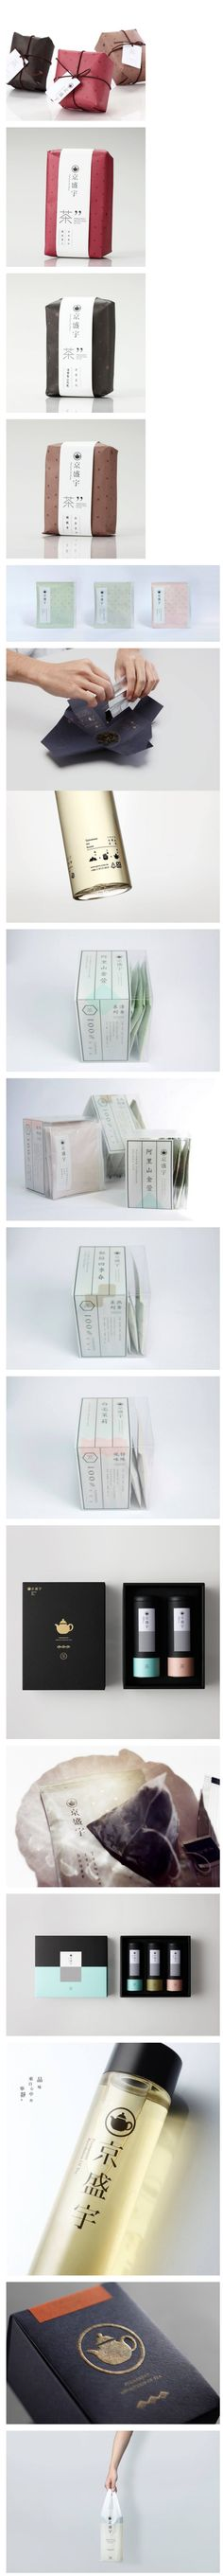 packaging / package design | Taiwan Tea Packaging 台湾茶品牌京盛宇